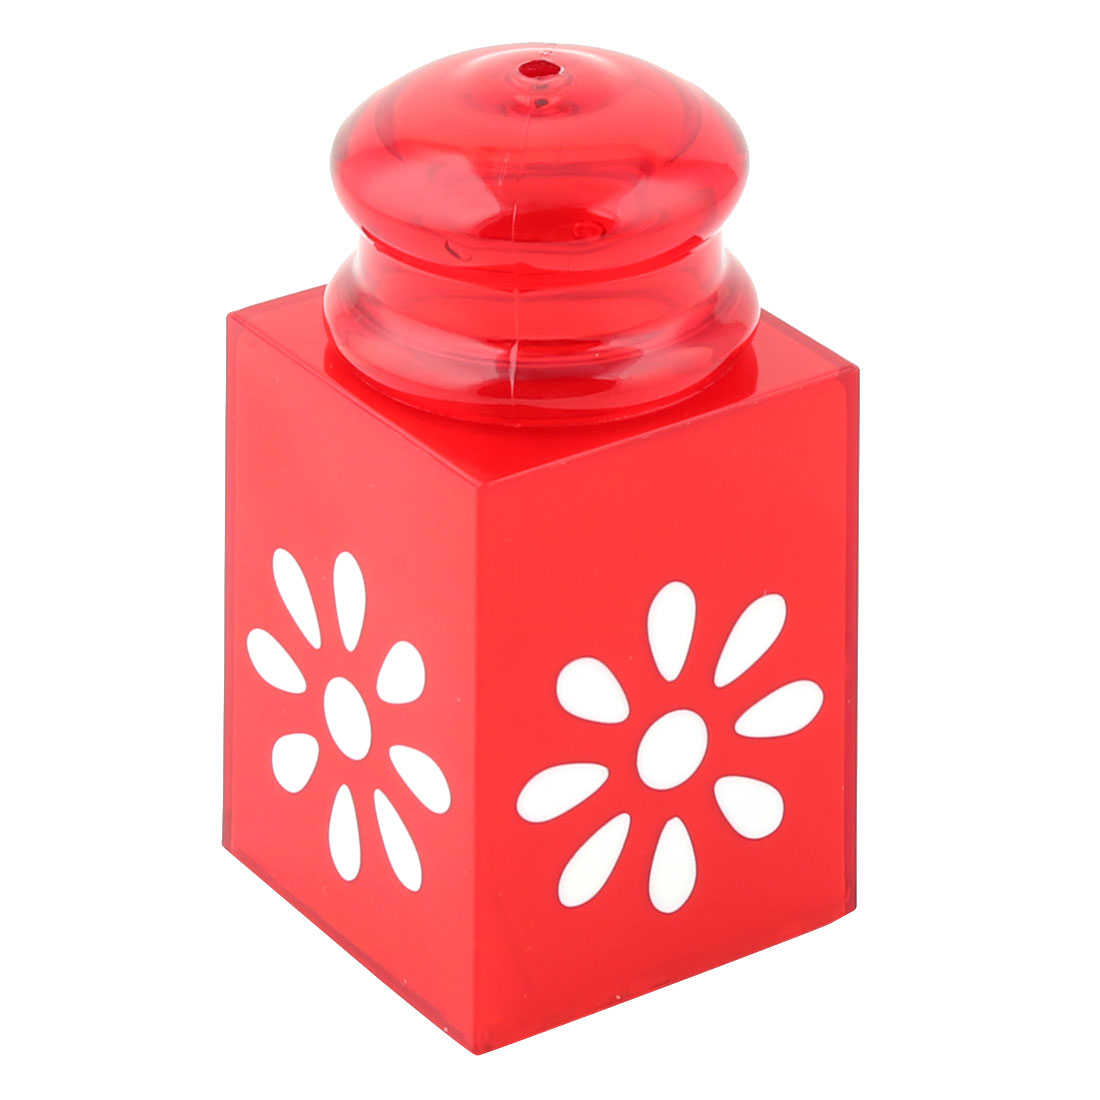 Home Plastic Can Signet Shaped Flower Pattern Toothpick Holder Storage Case Red